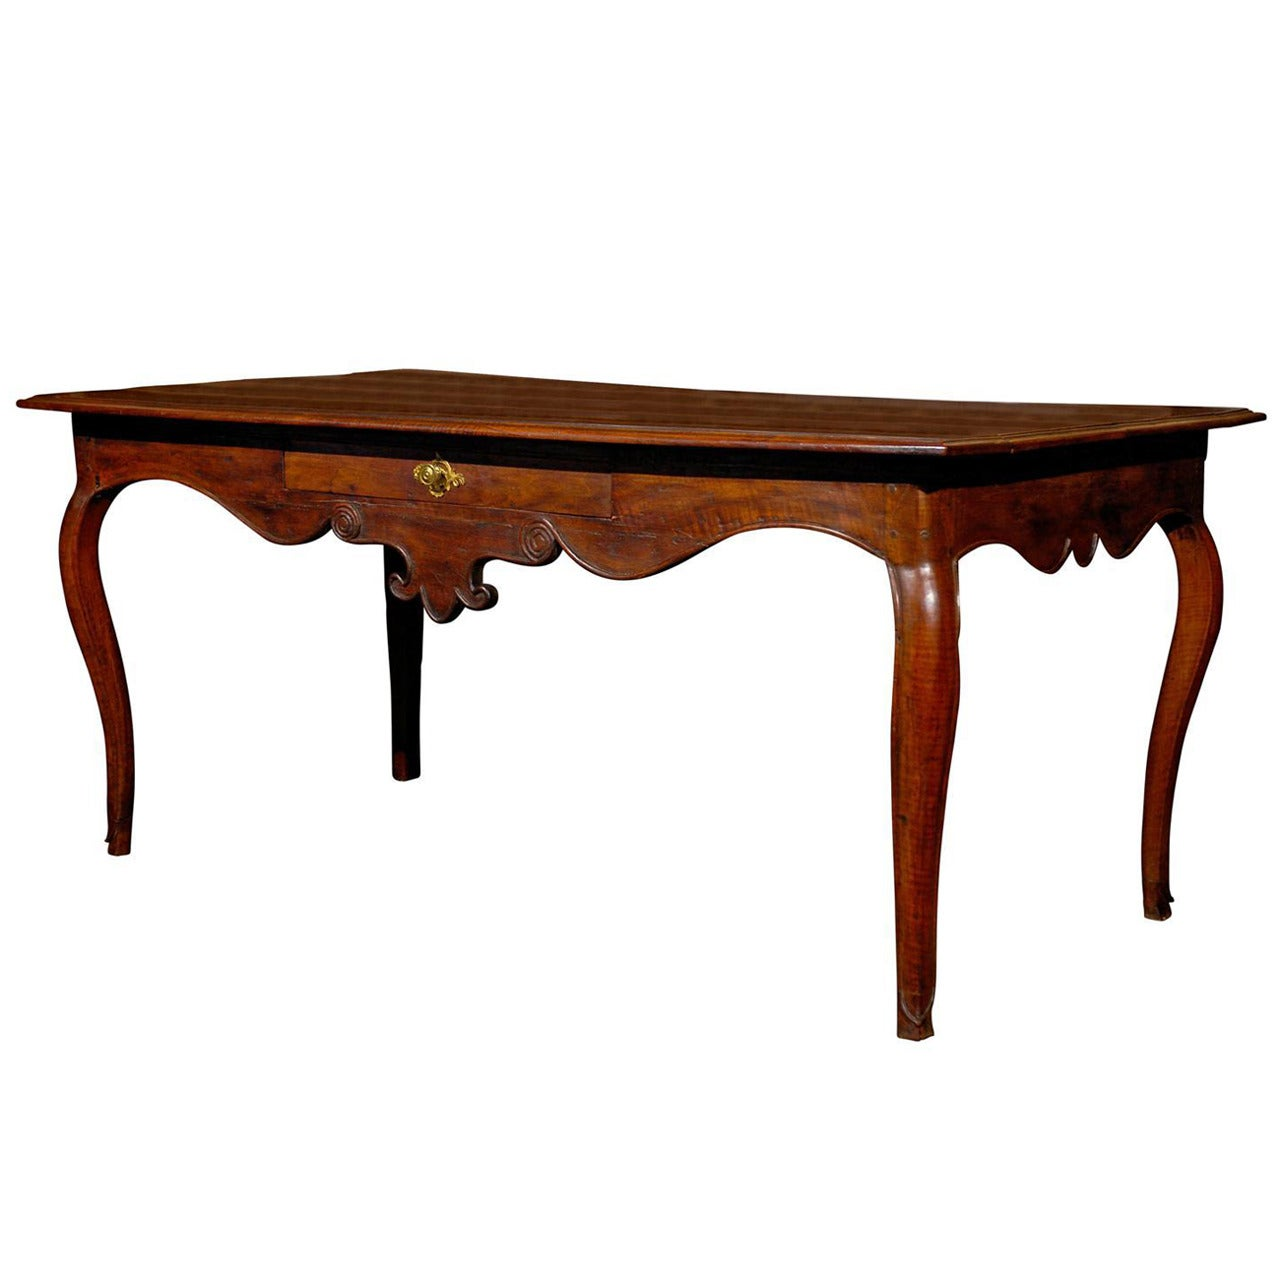 French 1860s Walnut Console Table with Exquisite Carved Apron and Cabriole Legs